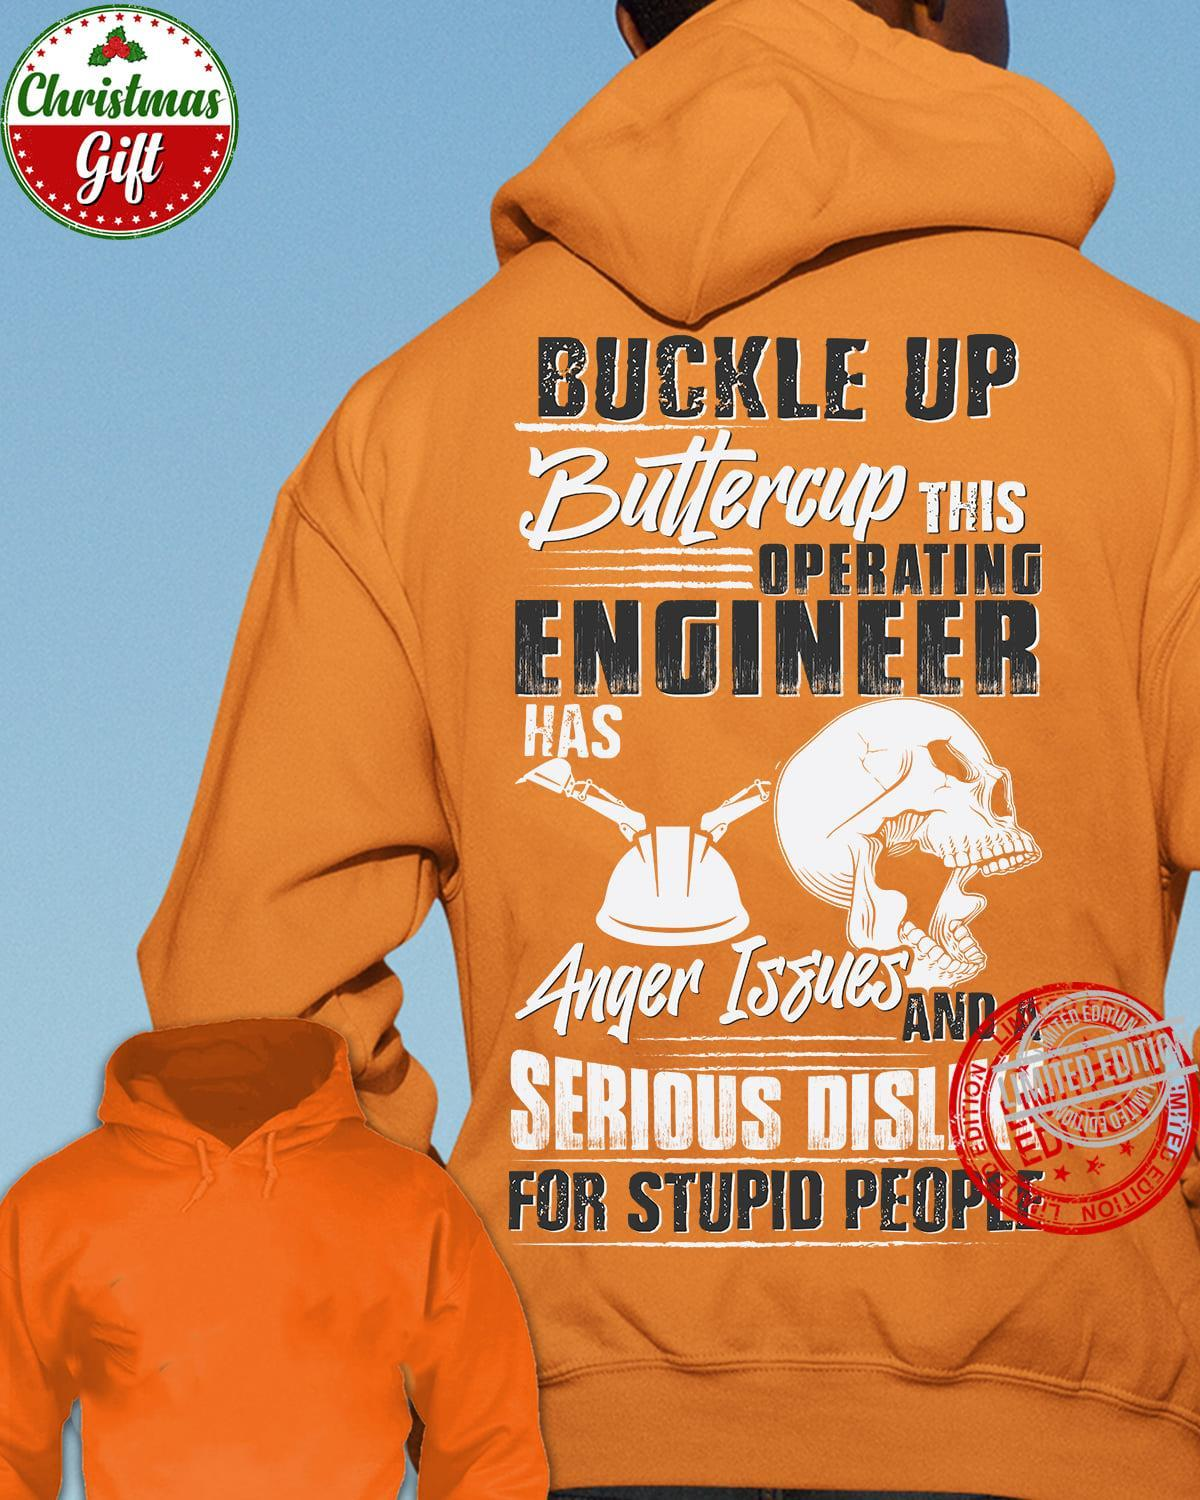 Buckle Up Buttercup This Operating Engineer Has Anger Issues And A Serious Dislike For Stupid People Shirt